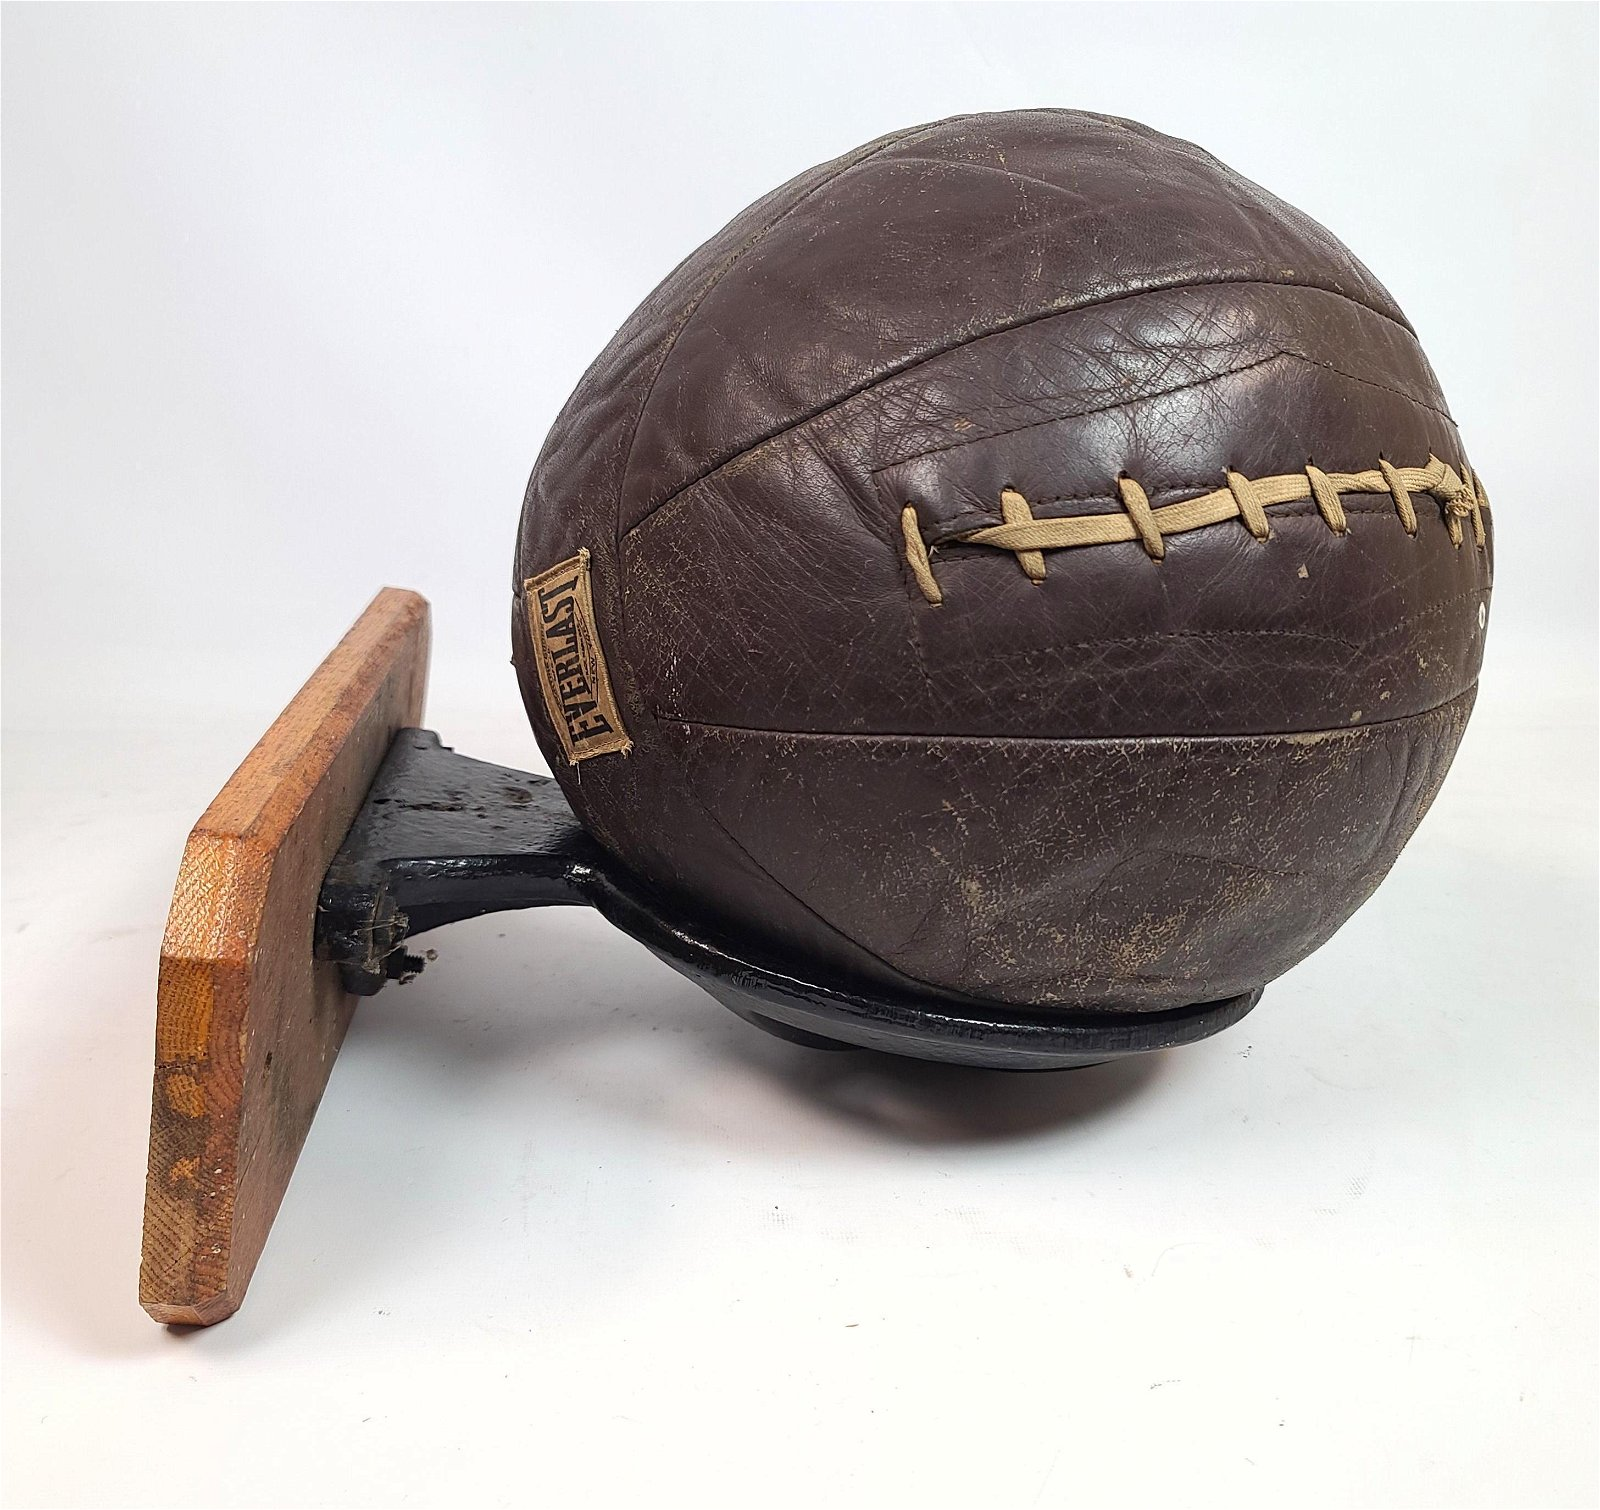 Vintage Everlast Medicine Ball with Original Iron and W